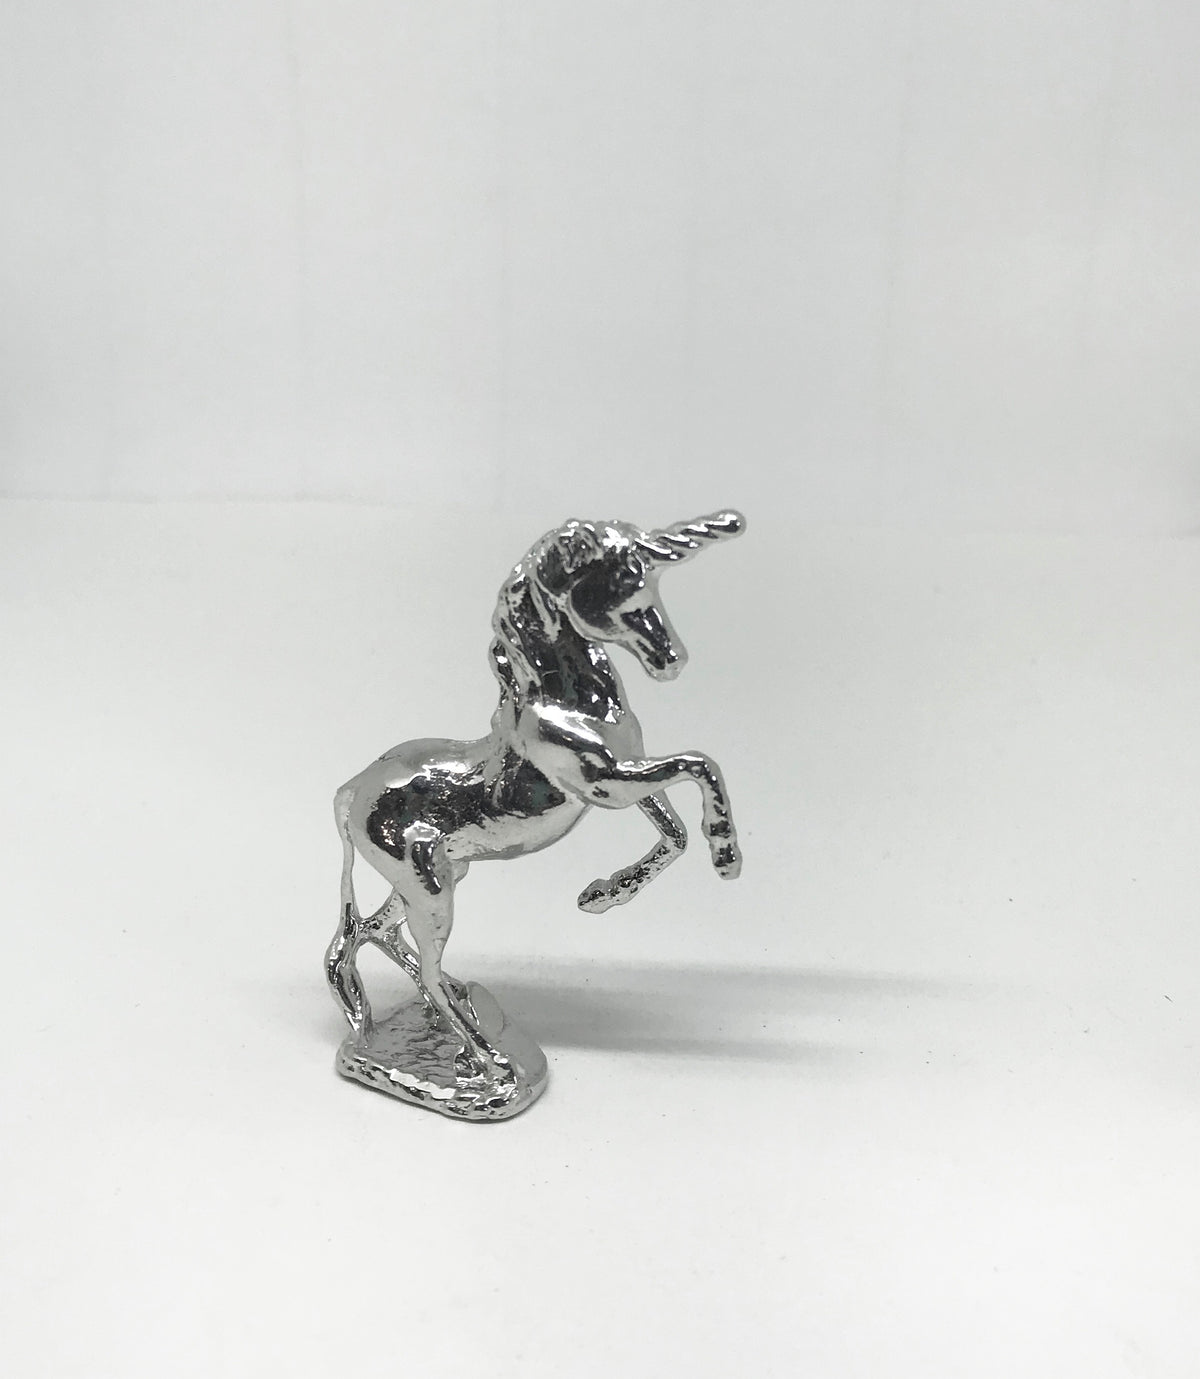 silver unicorn stand up figurine